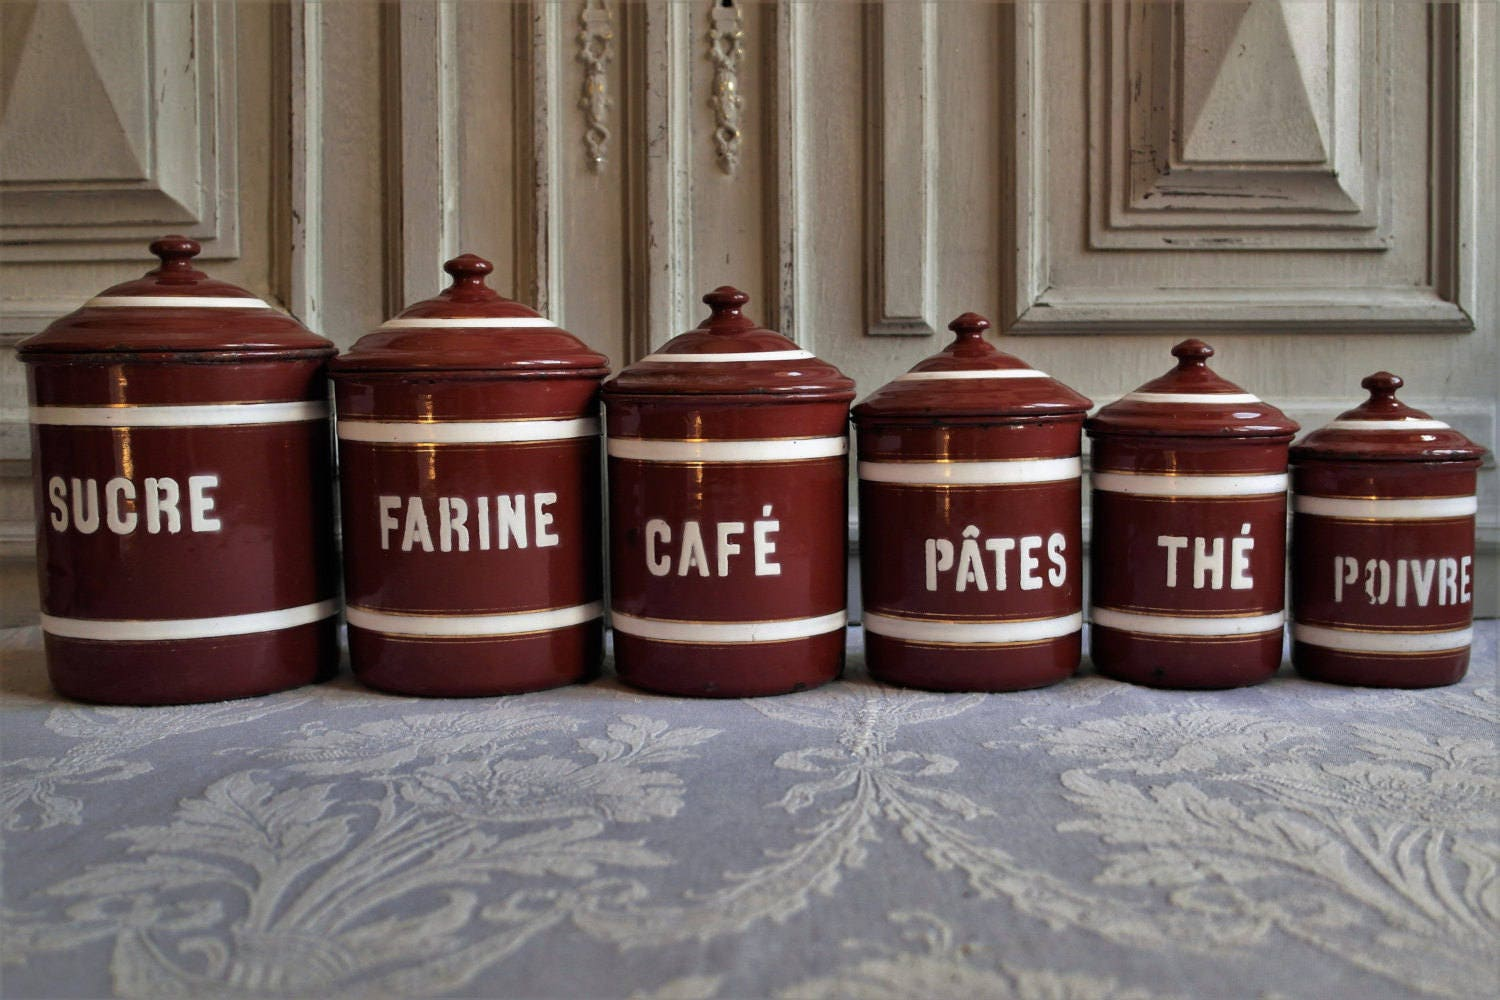 Enamel canisters tins french vintage kitchen set of 6 storage for Retro kitchen set of 6 spice tins